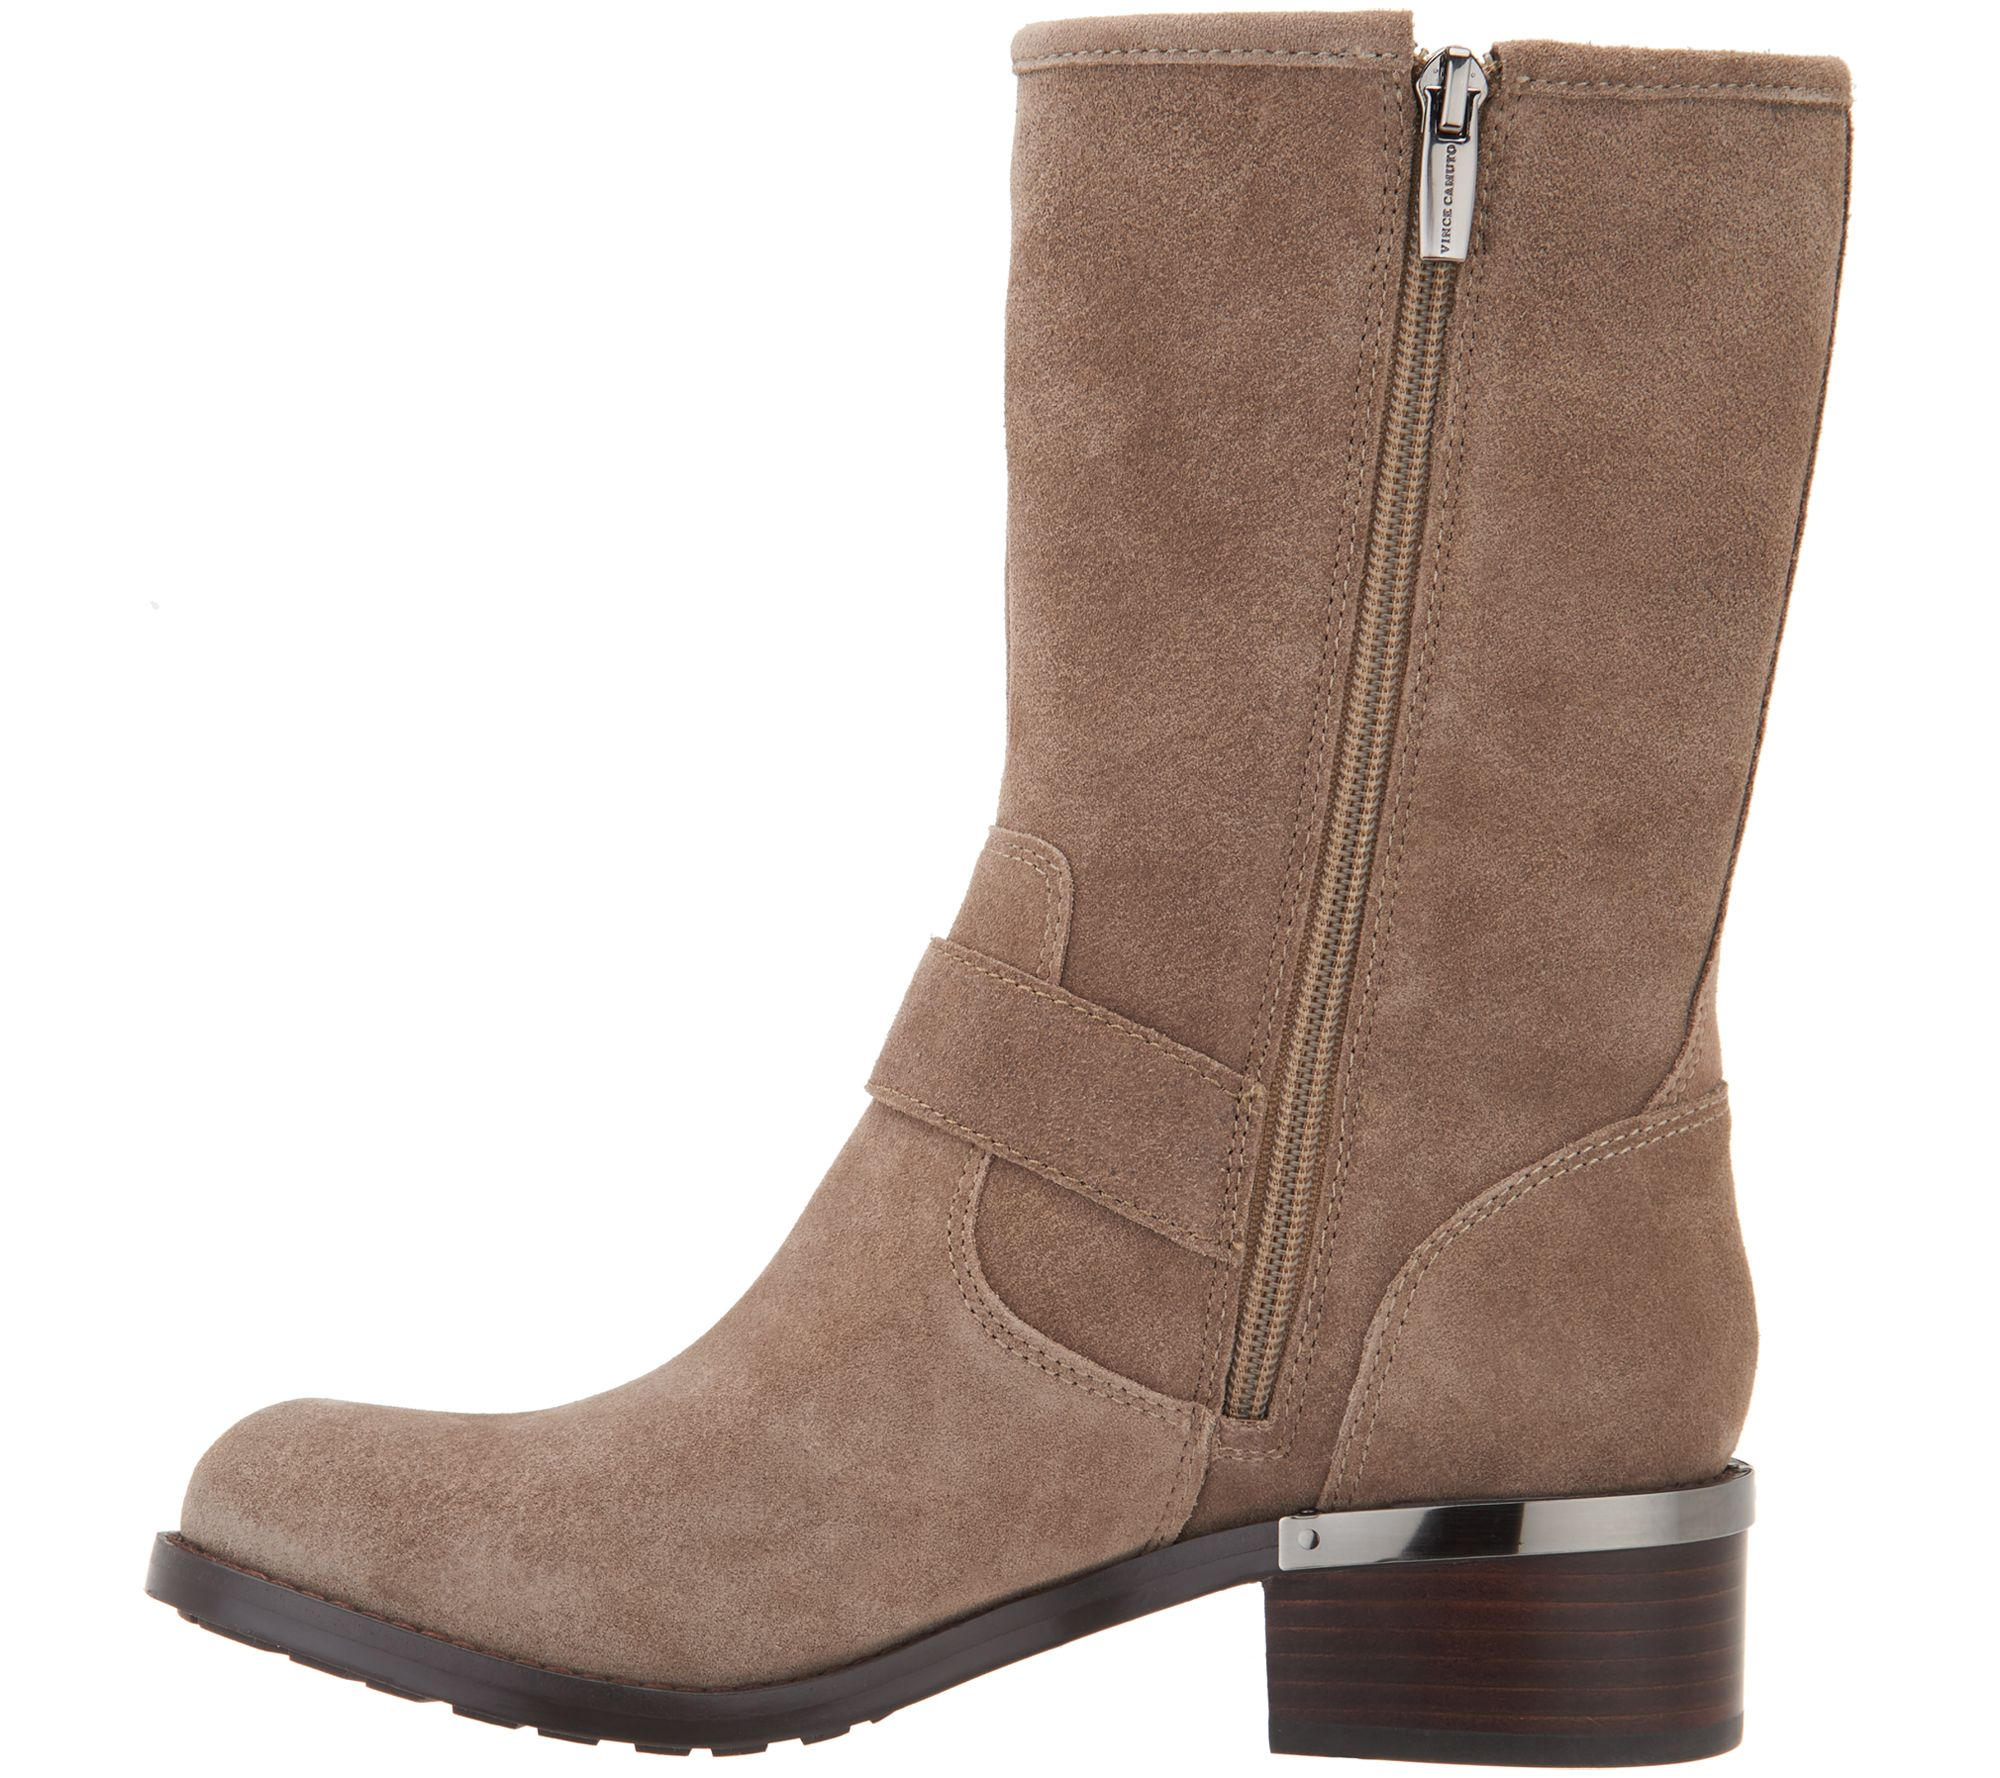 c6f9d122427 Vince Camuto Harness Detailed Mid-Calf Boots - Wantilla - Page 1 — QVC.com